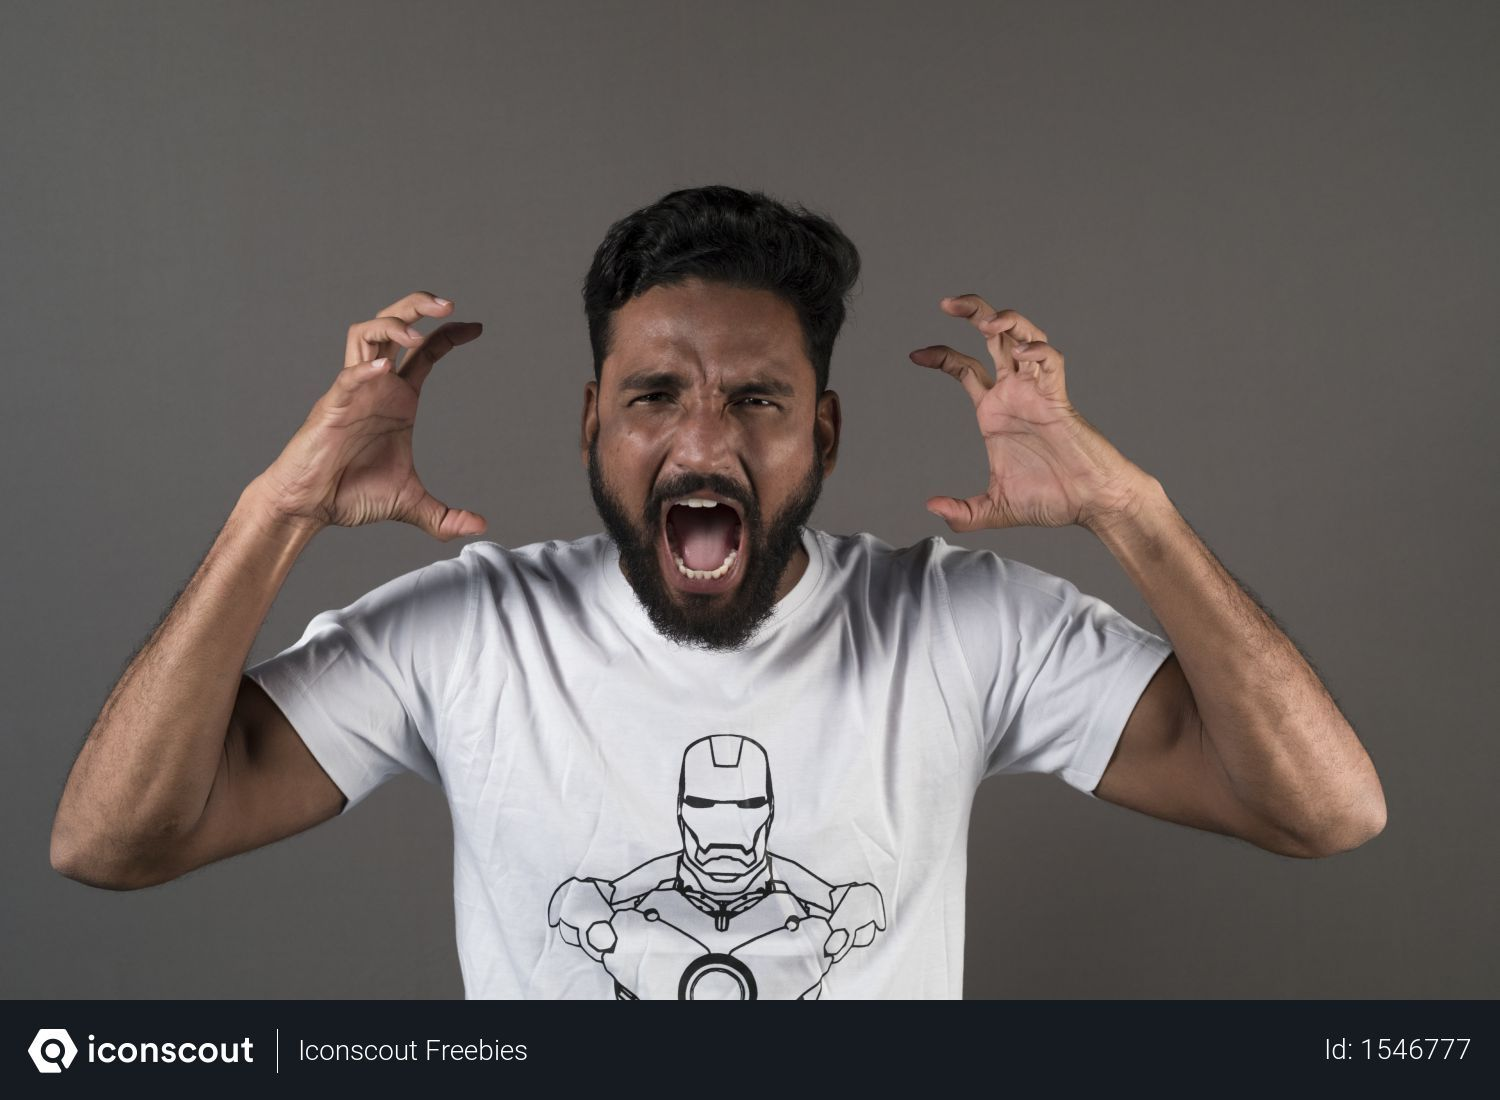 Free Angry Man Wearing White Tshirt And Showing Expressions Against Grey Background Photo Download In Png Jpg Format Gray Background How To Wear Menswear